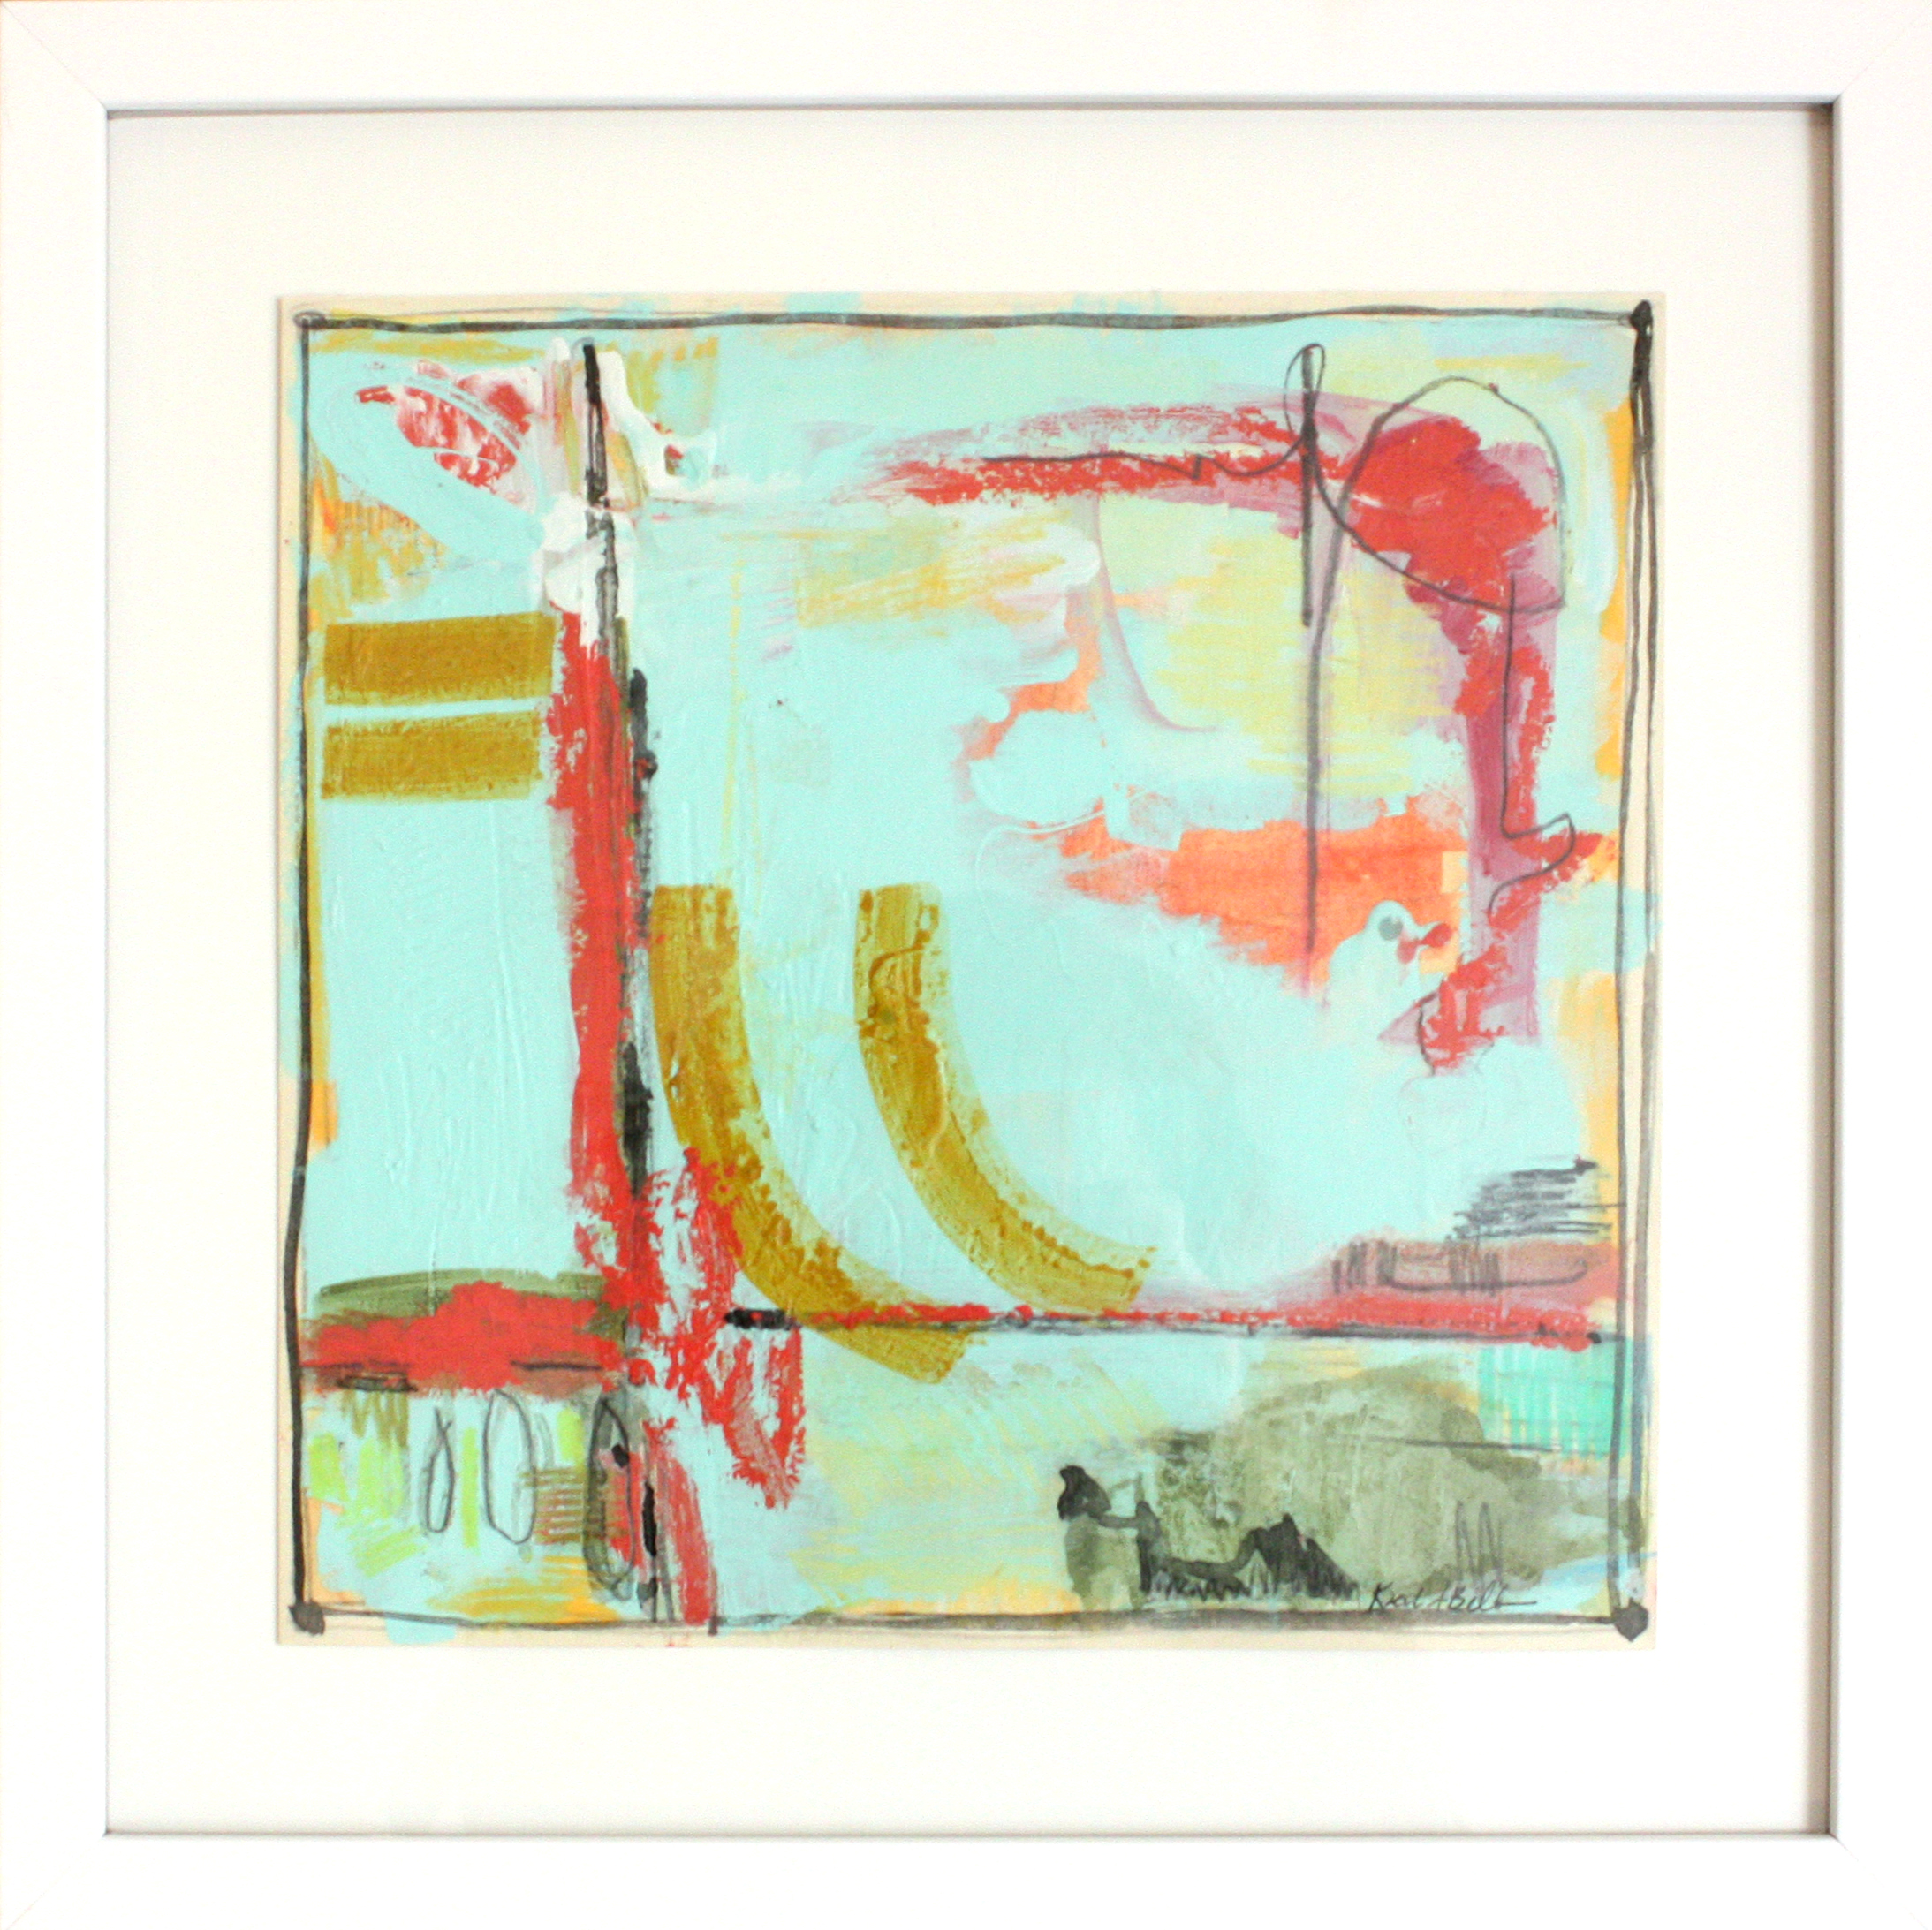 "Mint, Coral and Aqua 5 - 14.5"" x 14.5"" mixed media on board, framed$265"